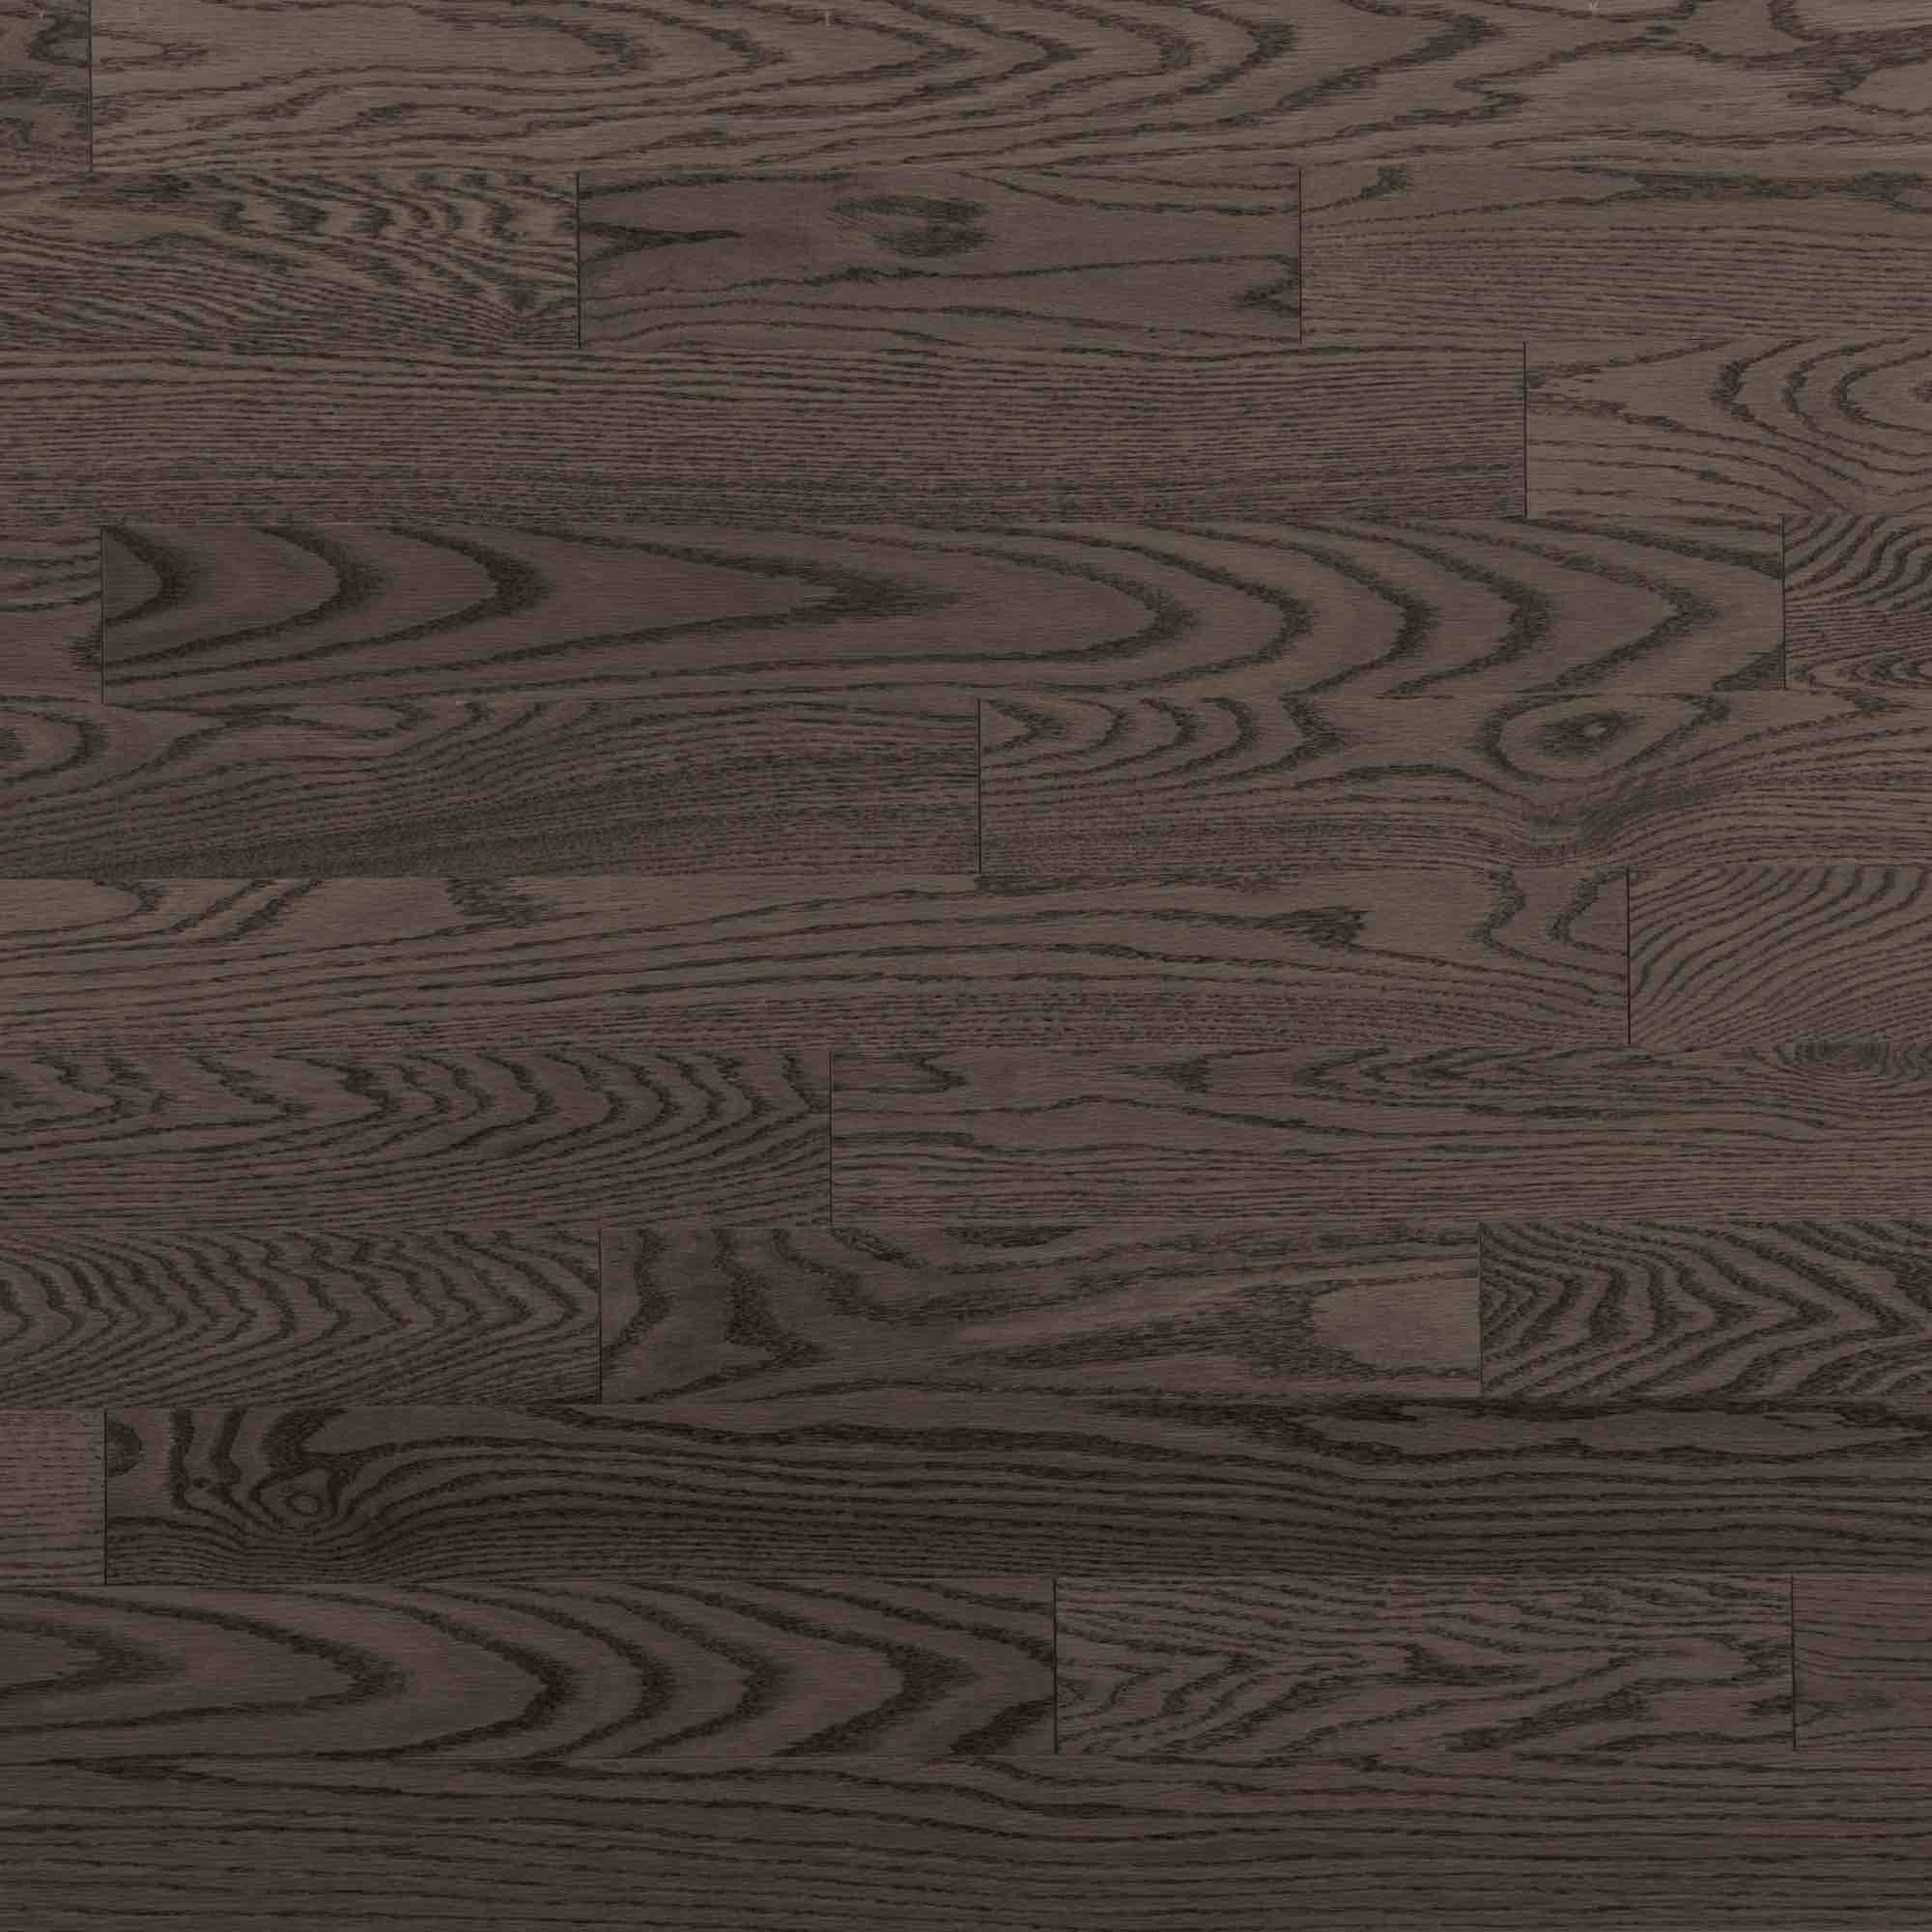 Best Hardwood Flooring Reno Of Hardwood Westfloors West Vancouver Hardwood Flooring Carpet with Featured Hardwoods Red Oak Charcoal